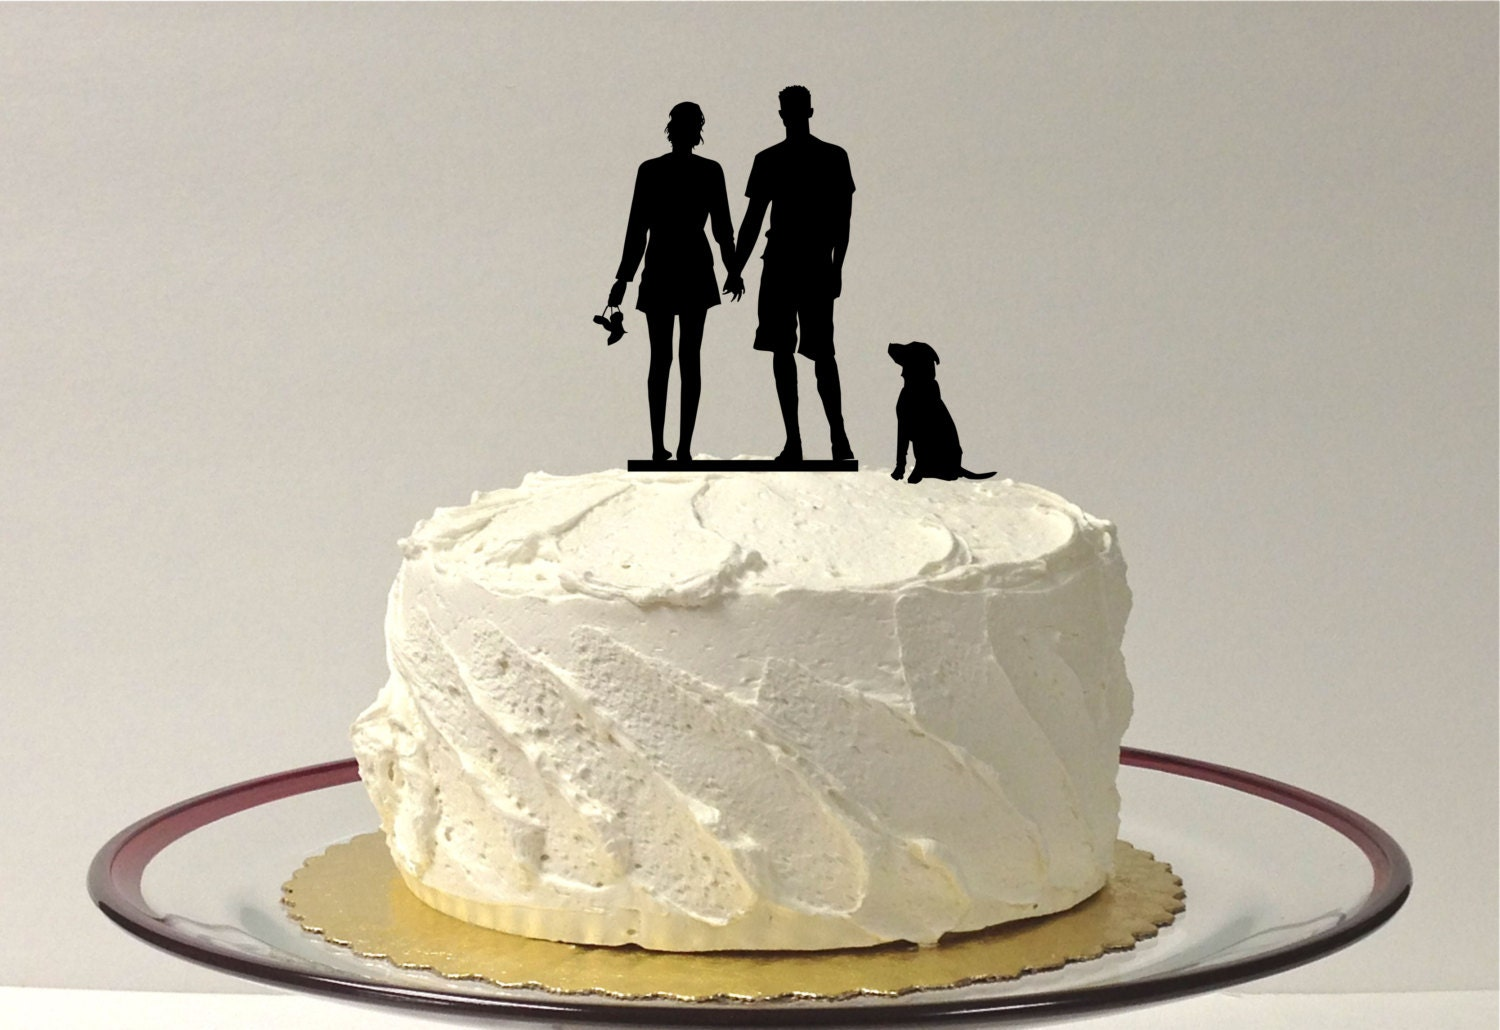 couple wedding cake silhouette wedding cake by 13016